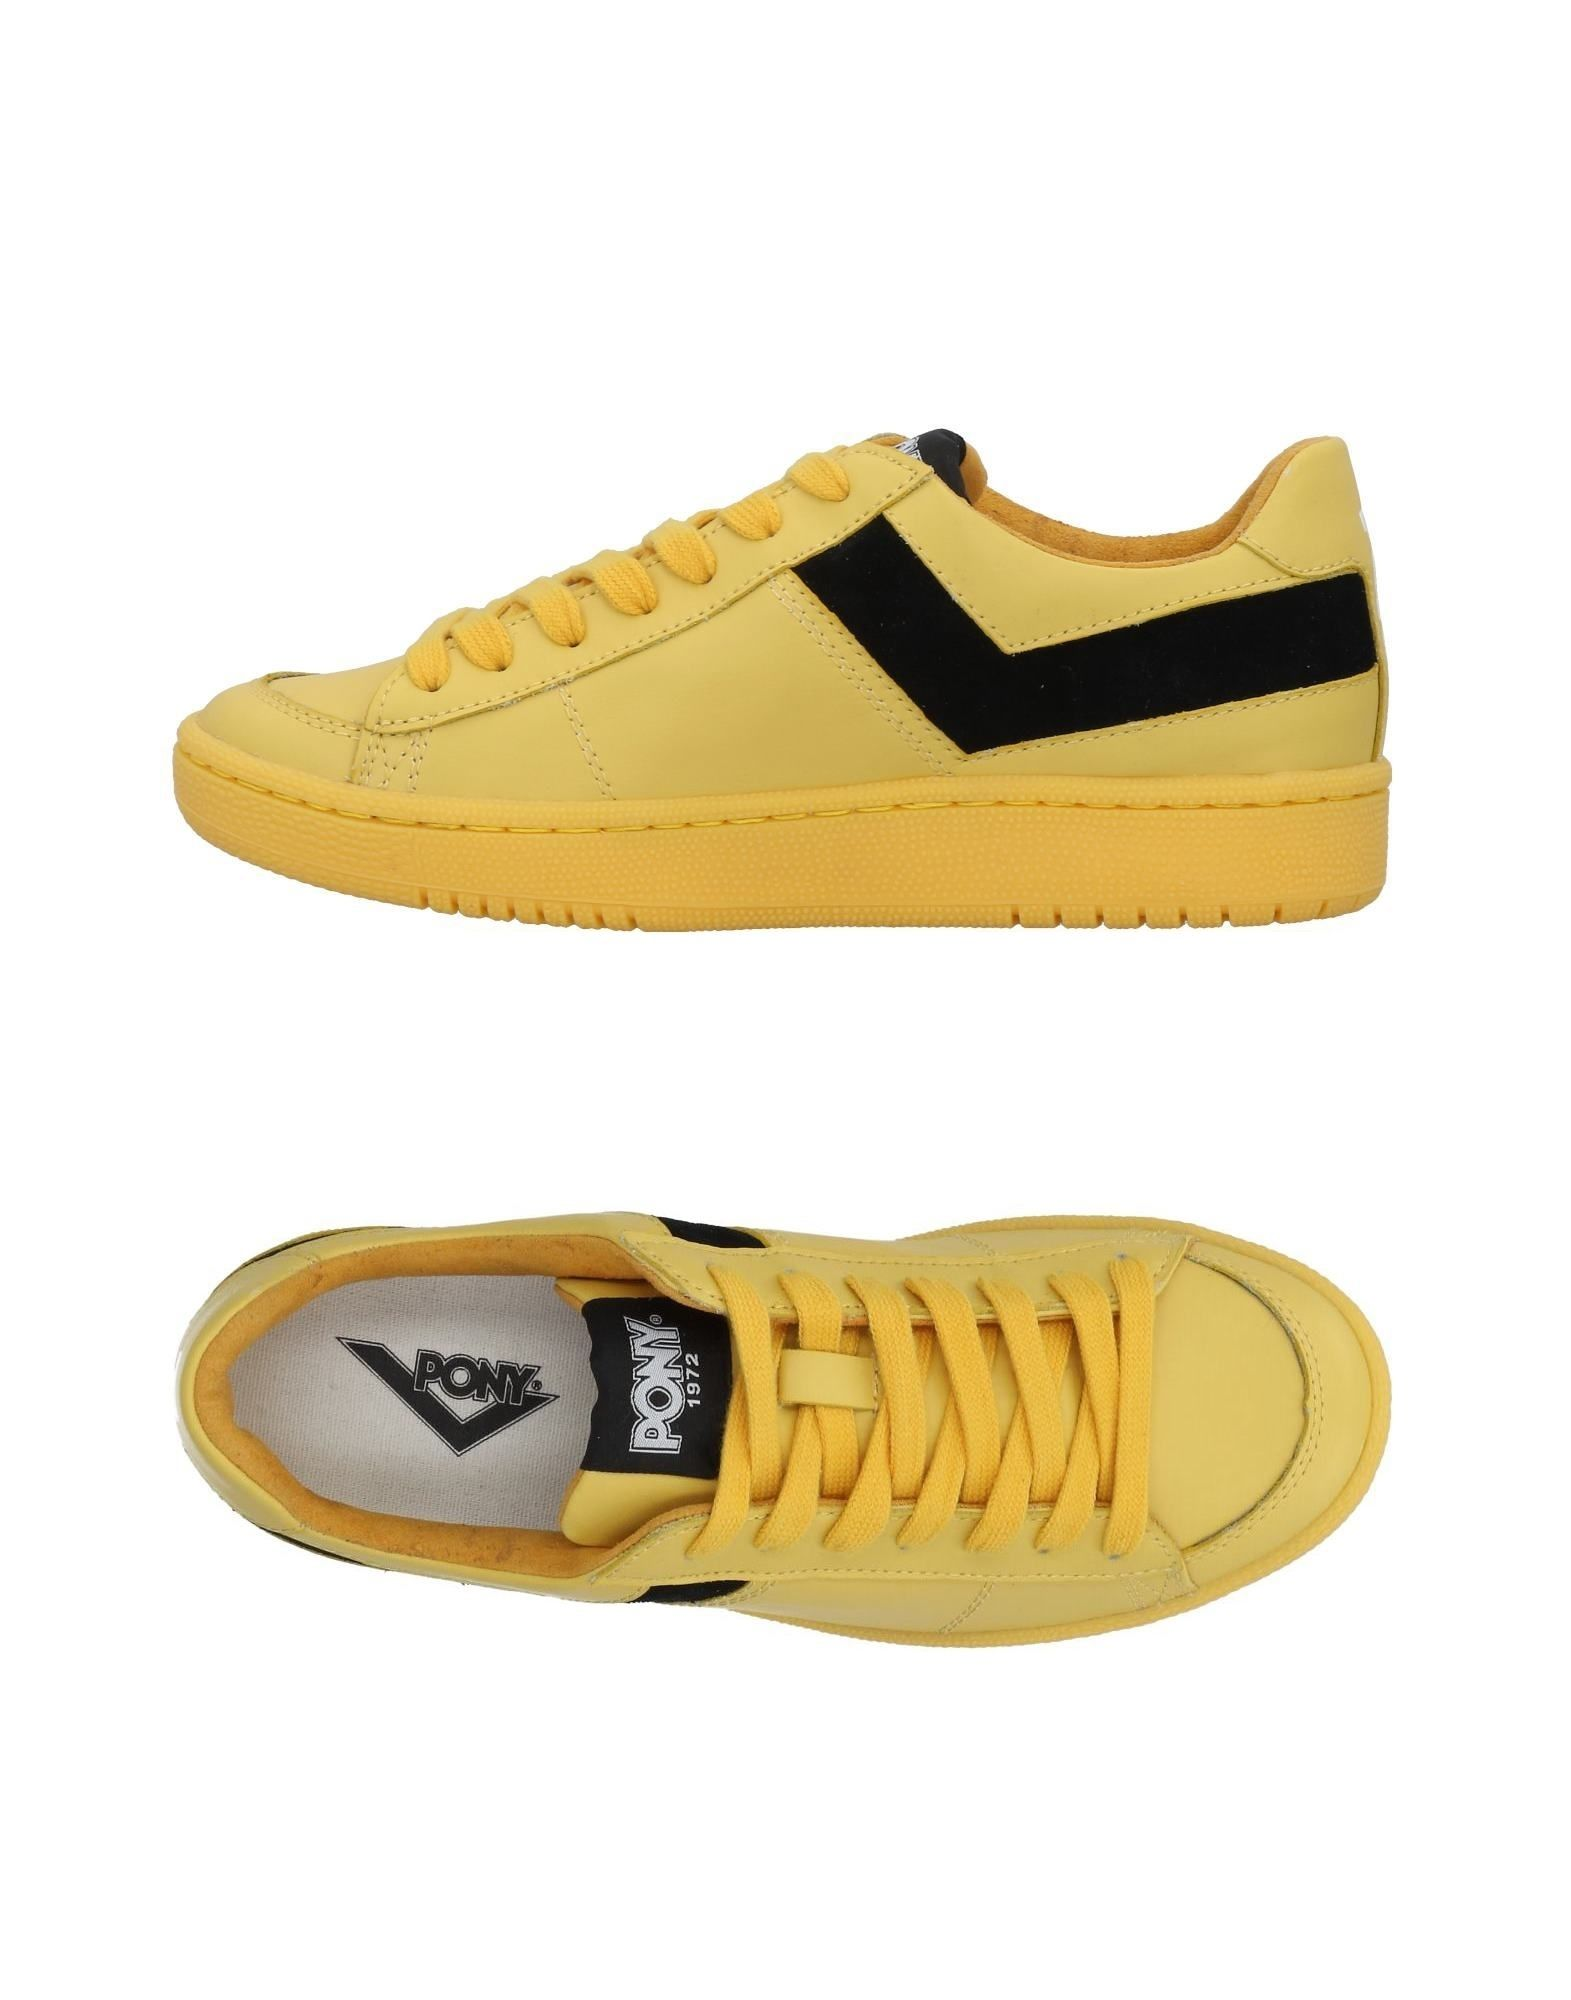 PONY Sneakers in Yellow